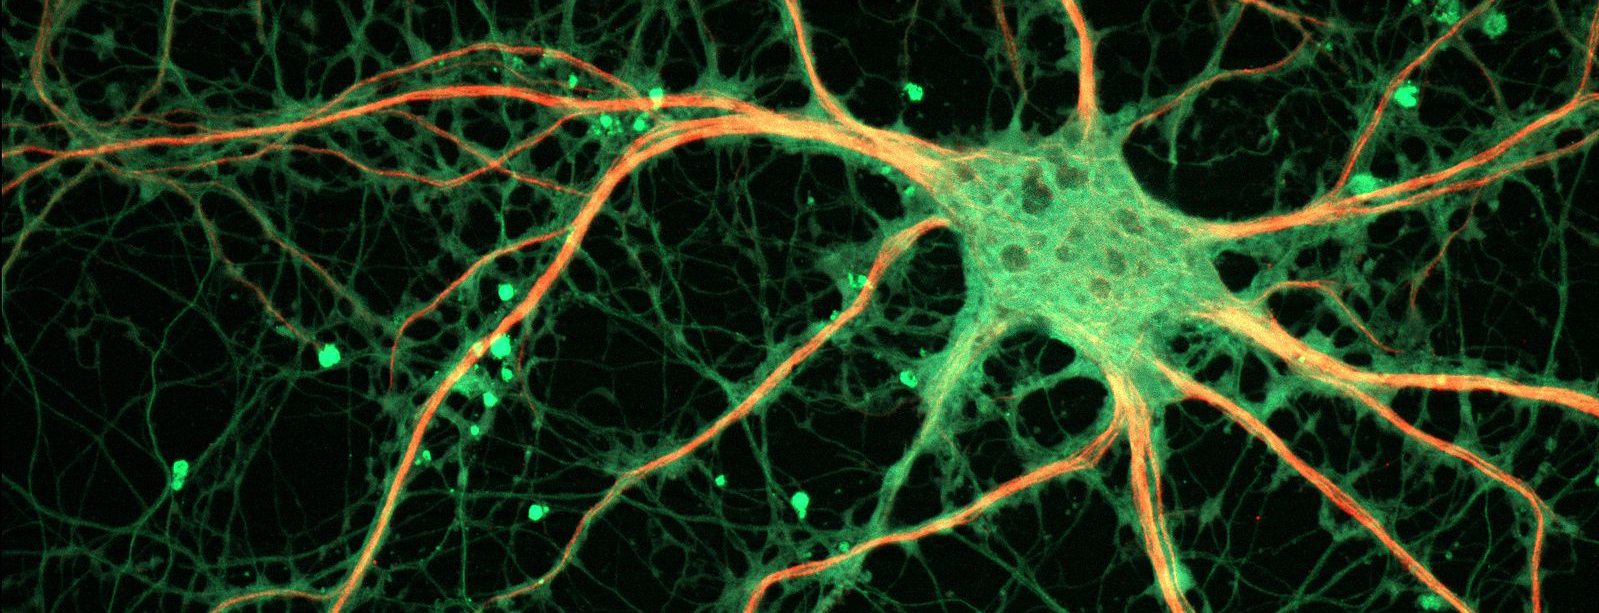 brain neuron network in green and yellow edges and nodes